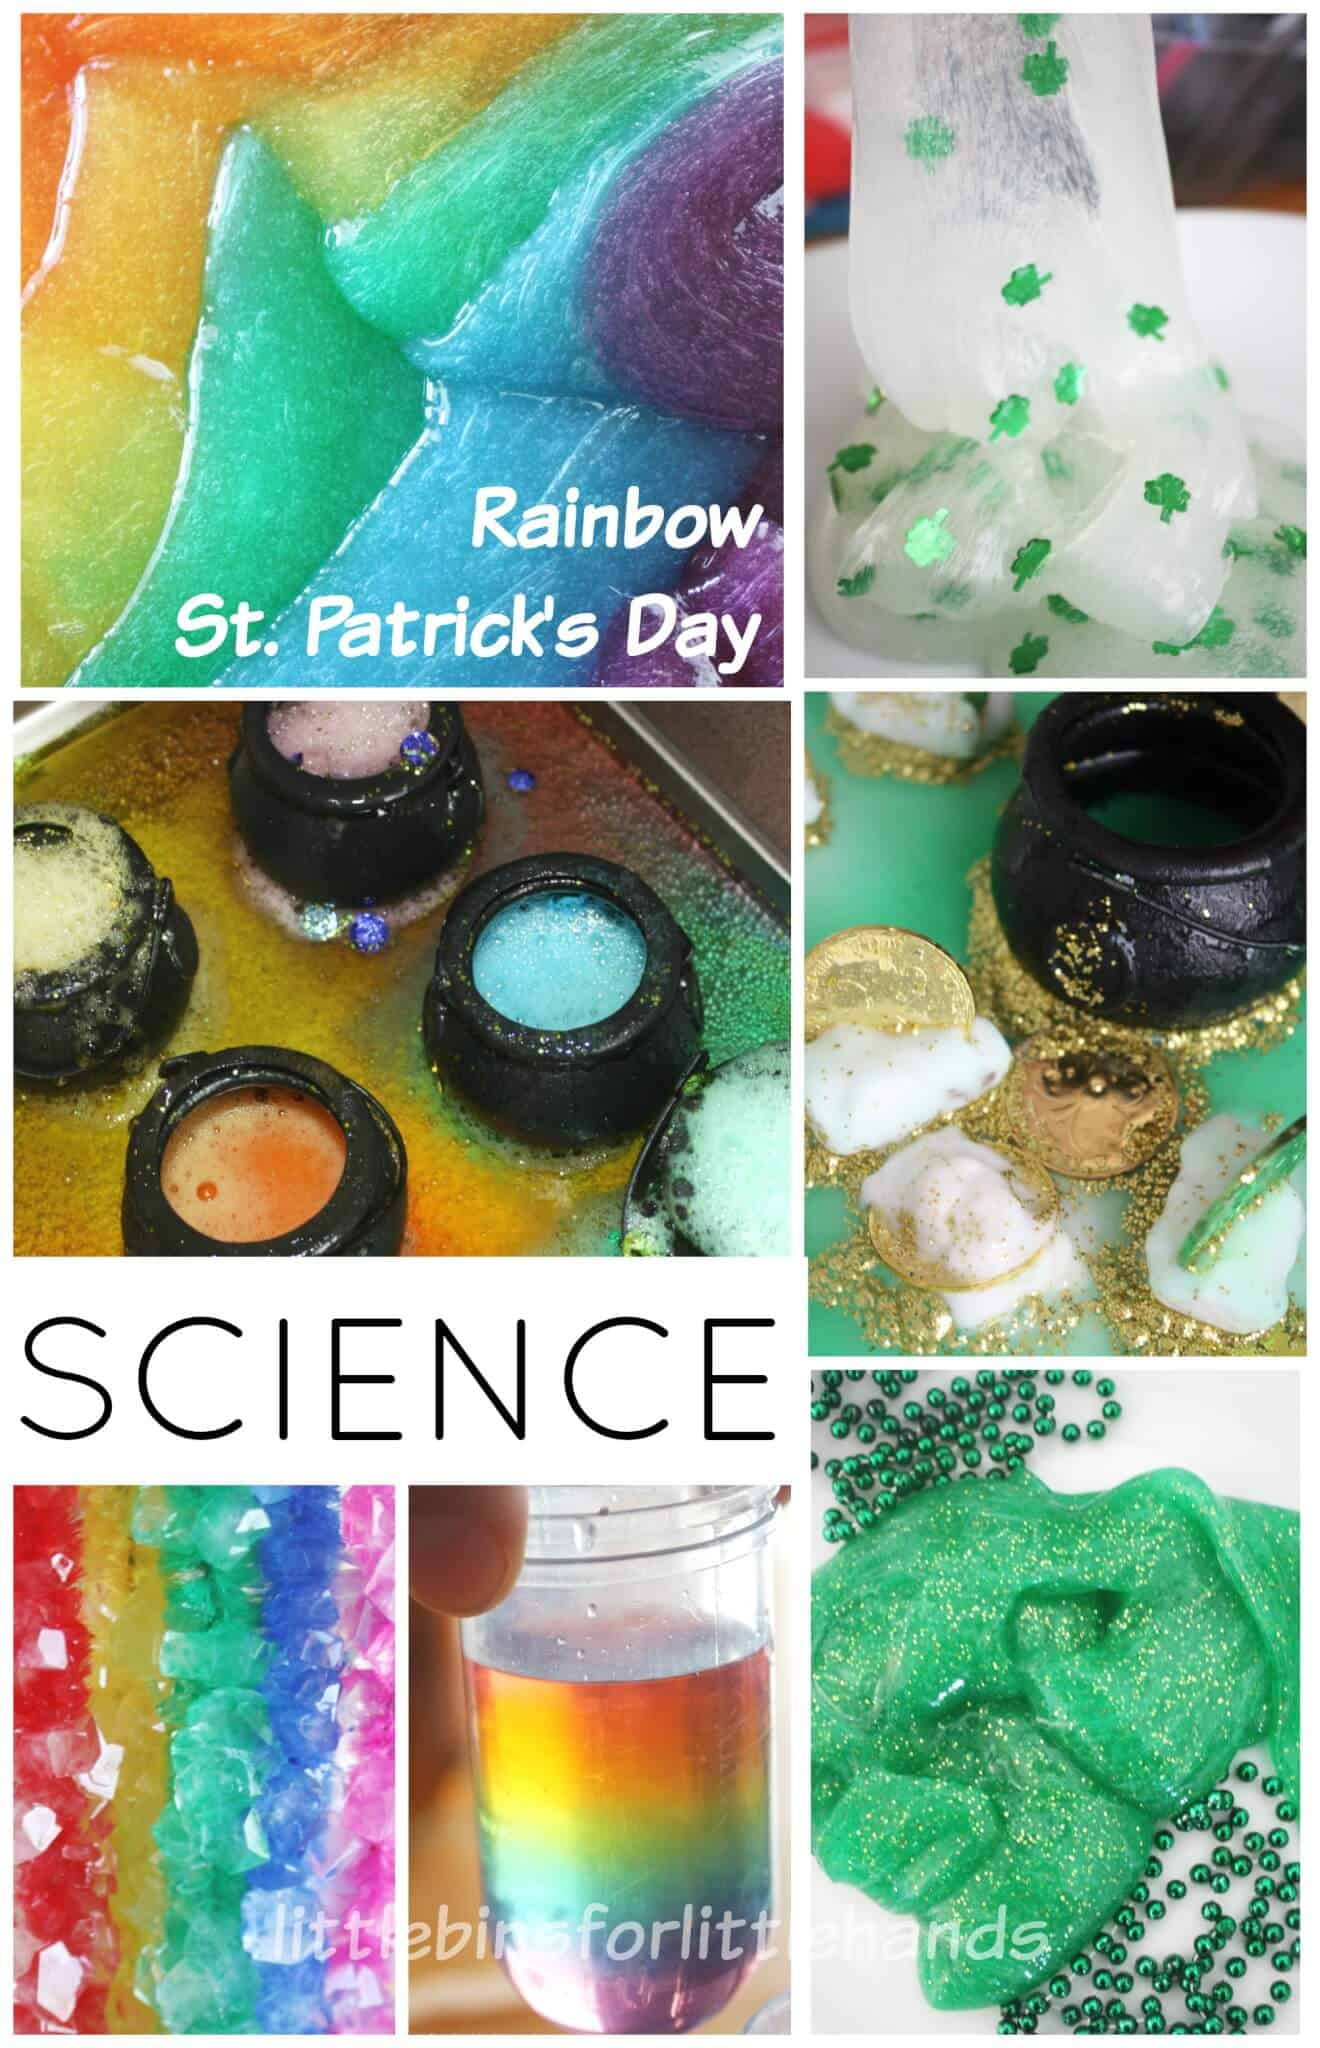 St Patricks Day Rainbow Science Experiments STEM Ideas